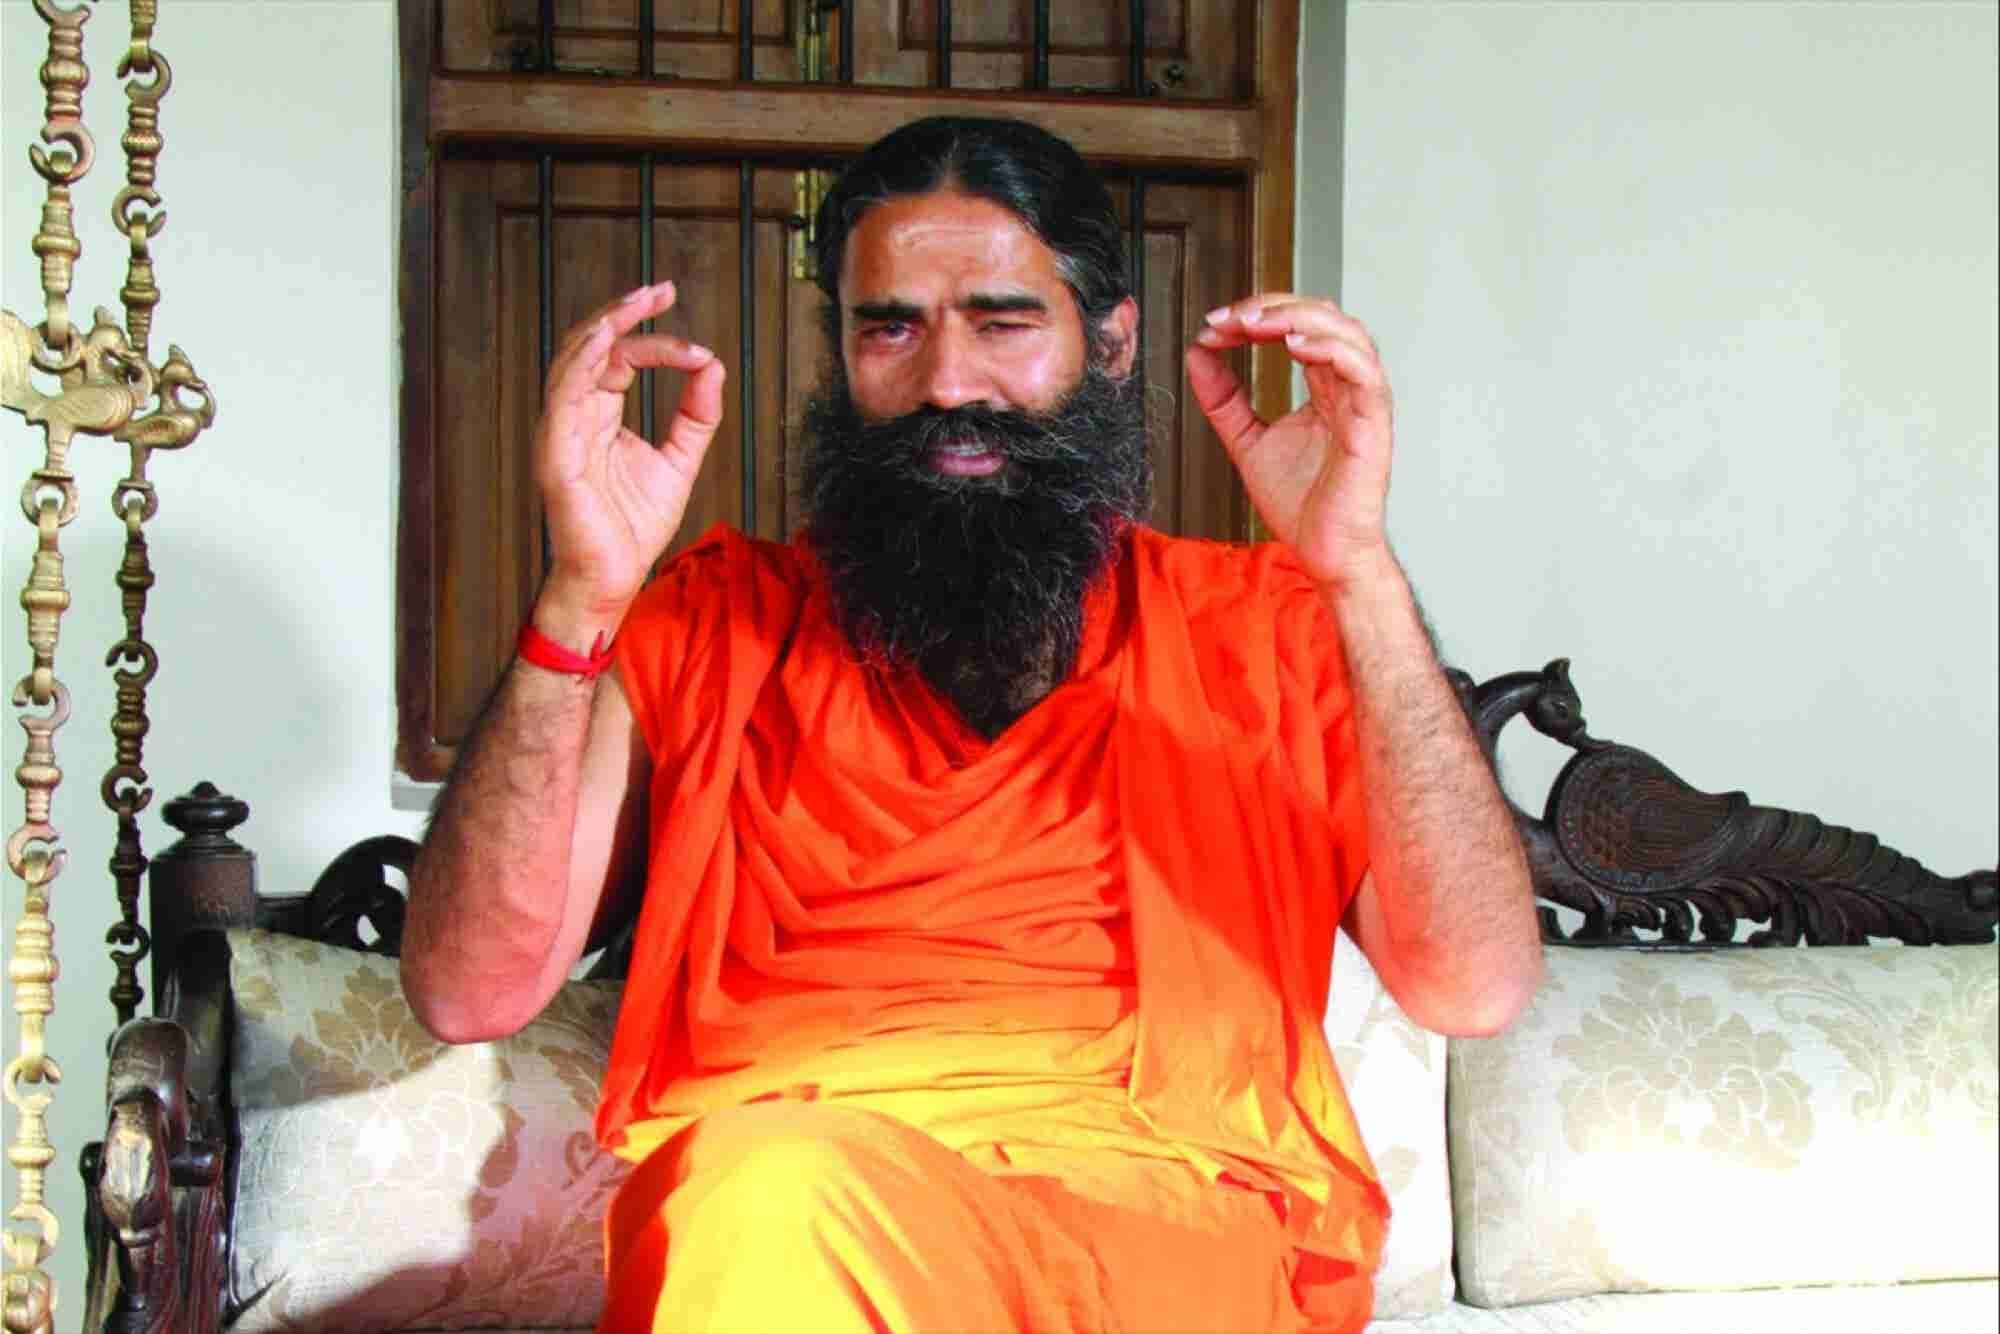 The Ultimate Yogipreneur - A Dialogue With Baba Ramdev